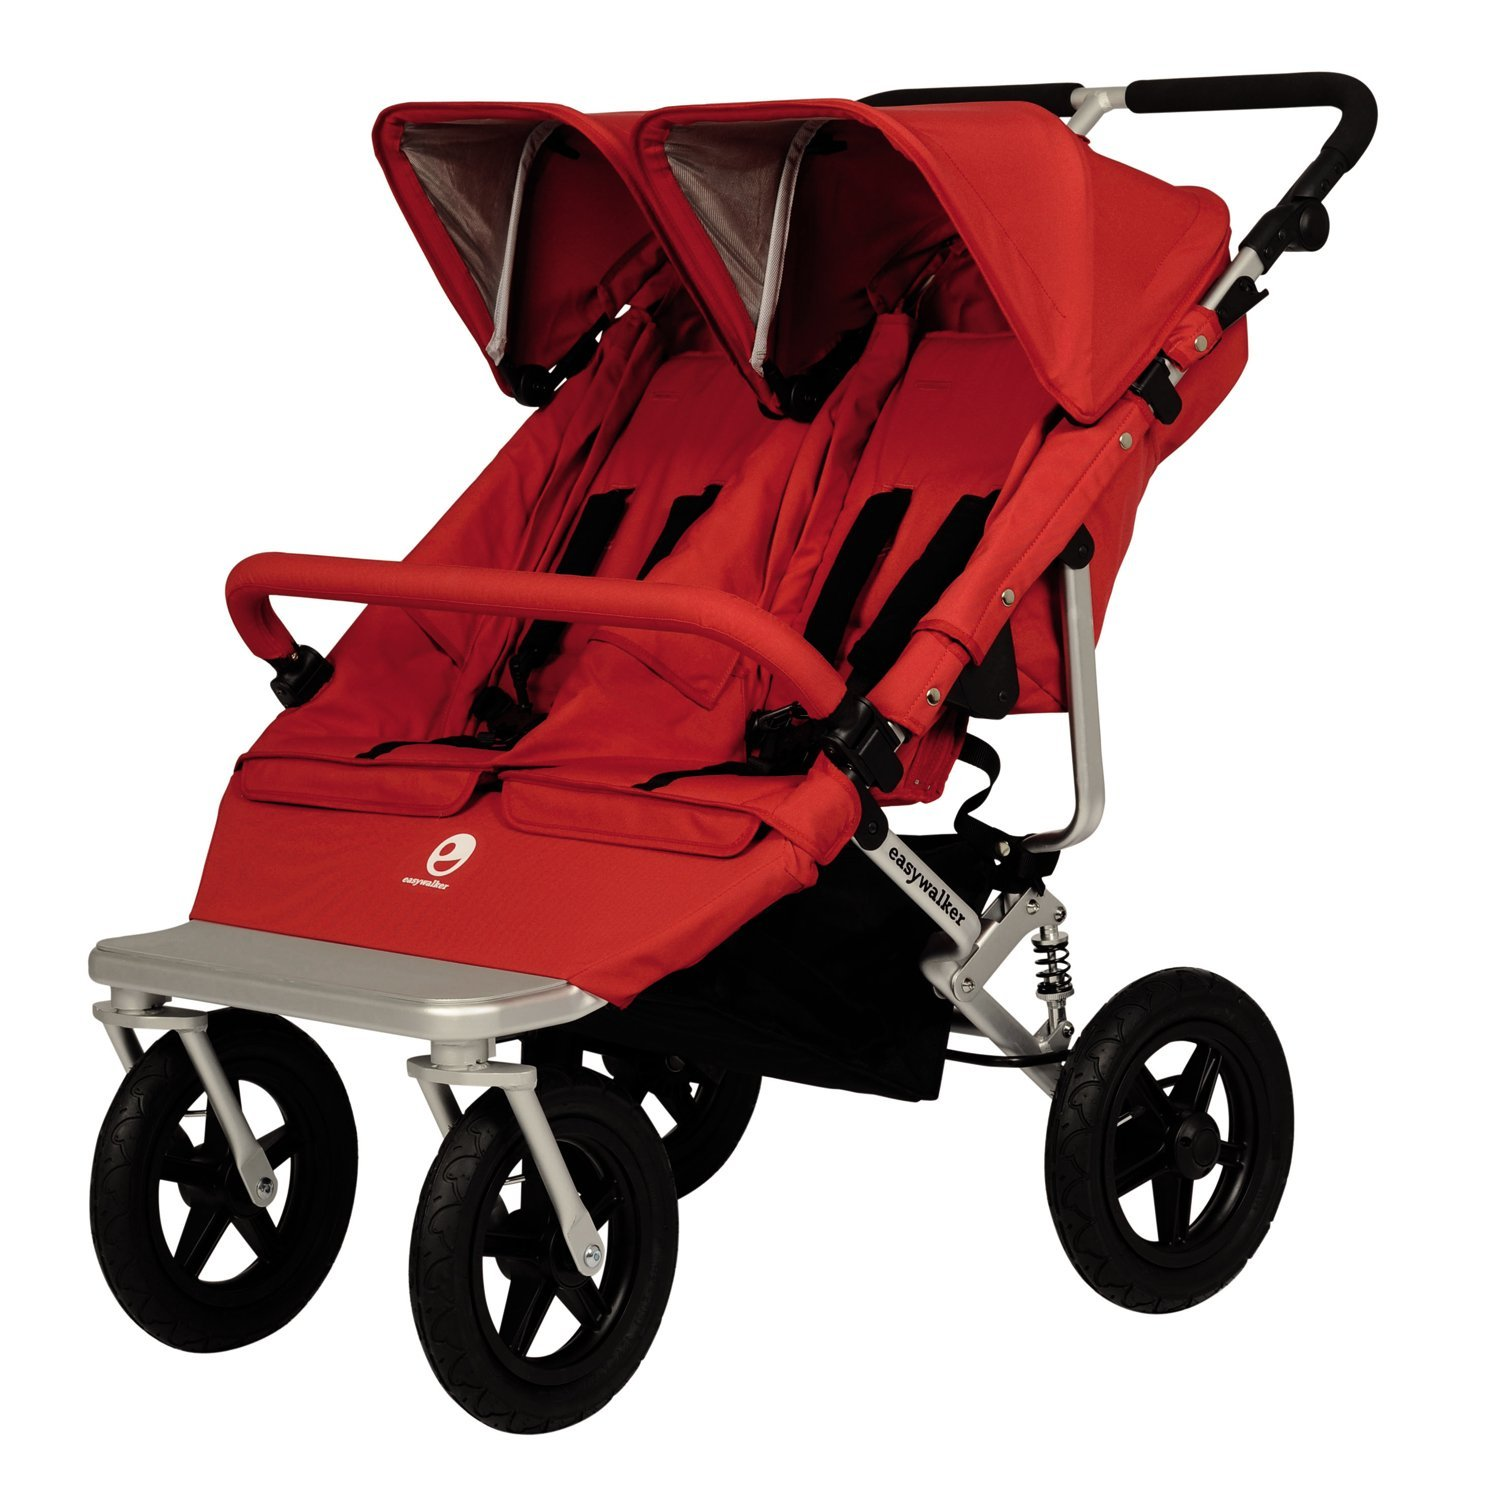 Easy Walker Sky Duo Plus Zwillingskinderwagen Easy Walker Sky Duo › Zwillingskinderwagen Im Vergleich